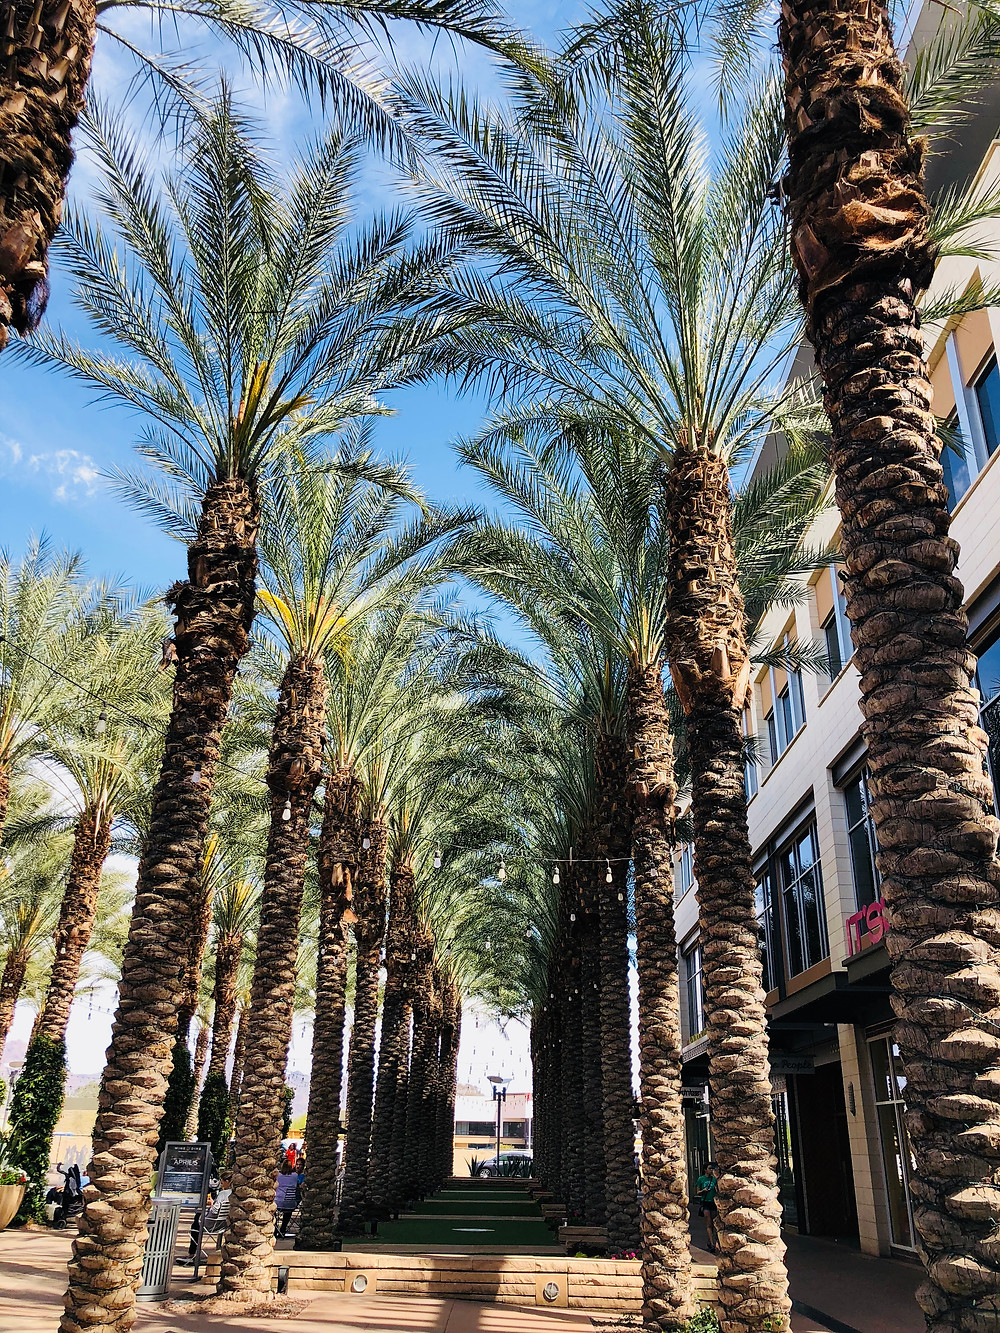 10 things to do in Scottsdale